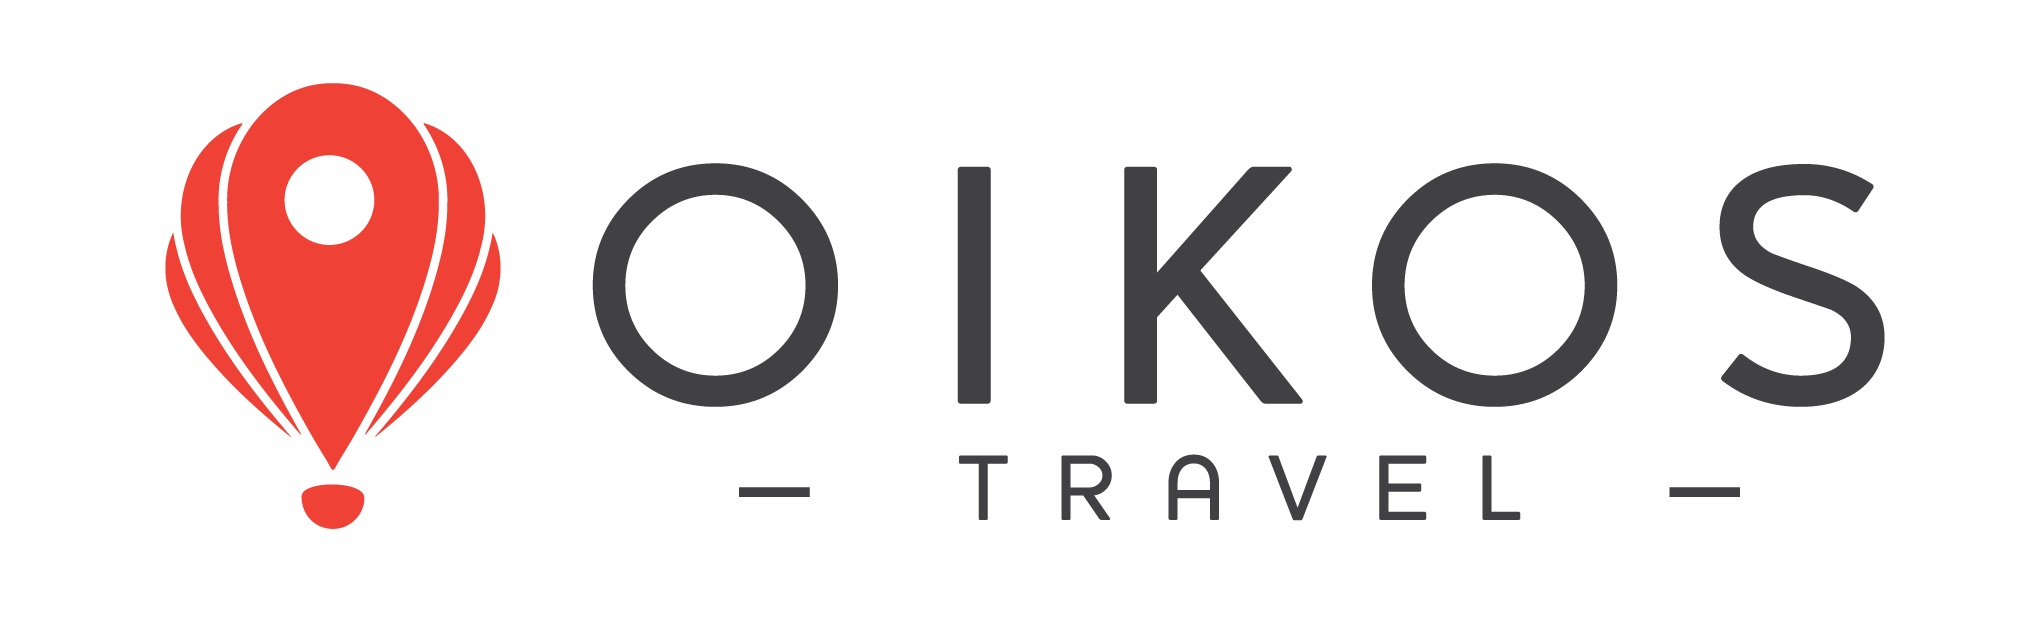 oikos travel logo